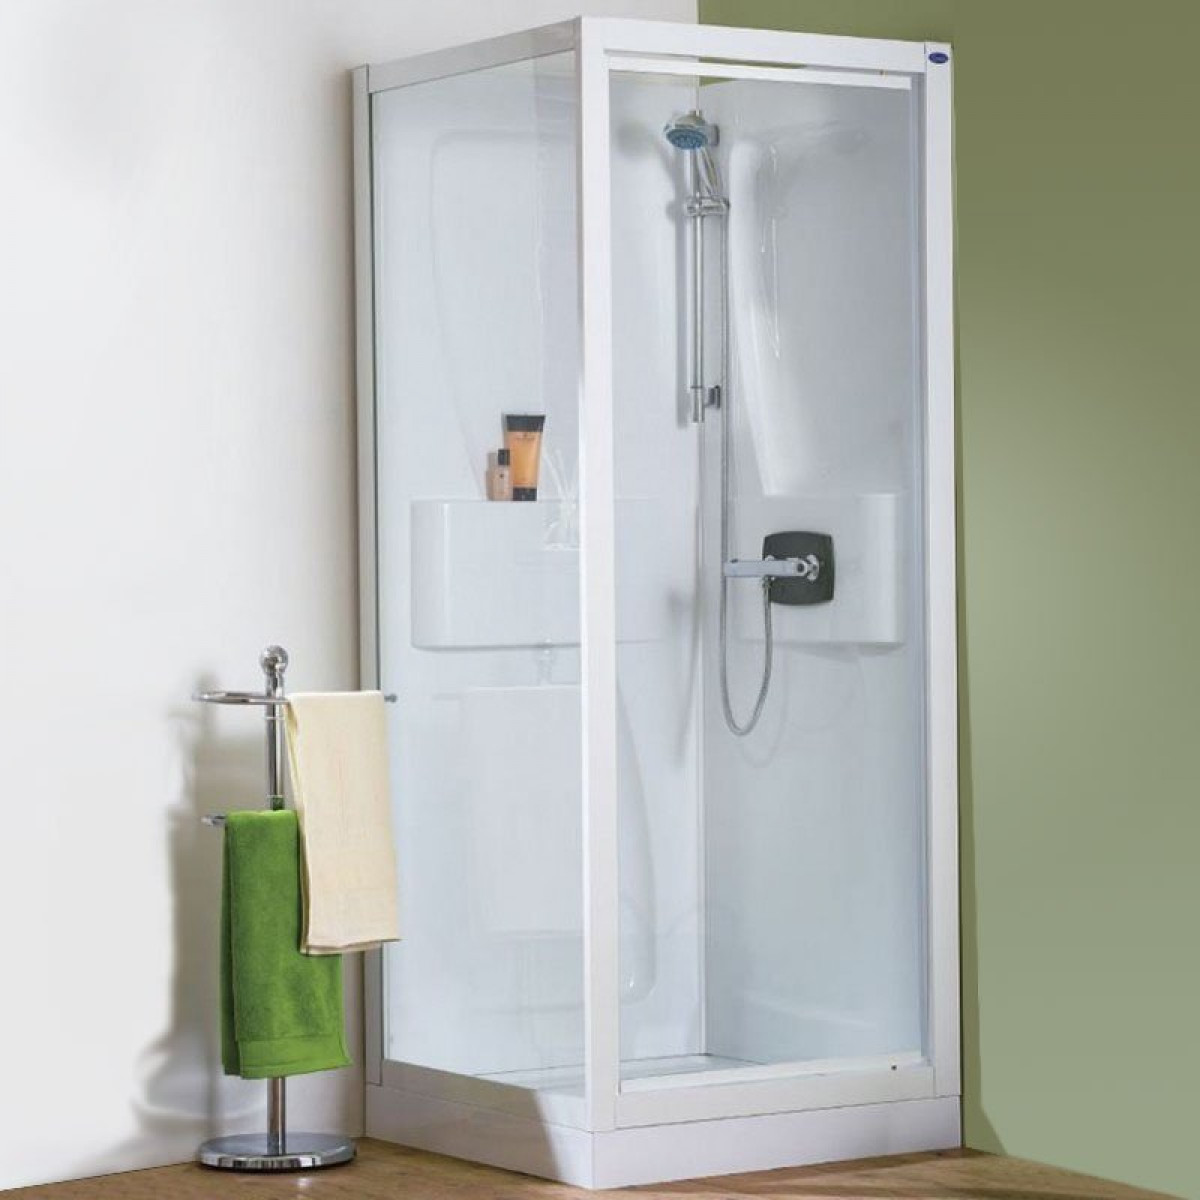 Kinedo Kineprime 1000 X 800mm Recess Pivot Shower Pod